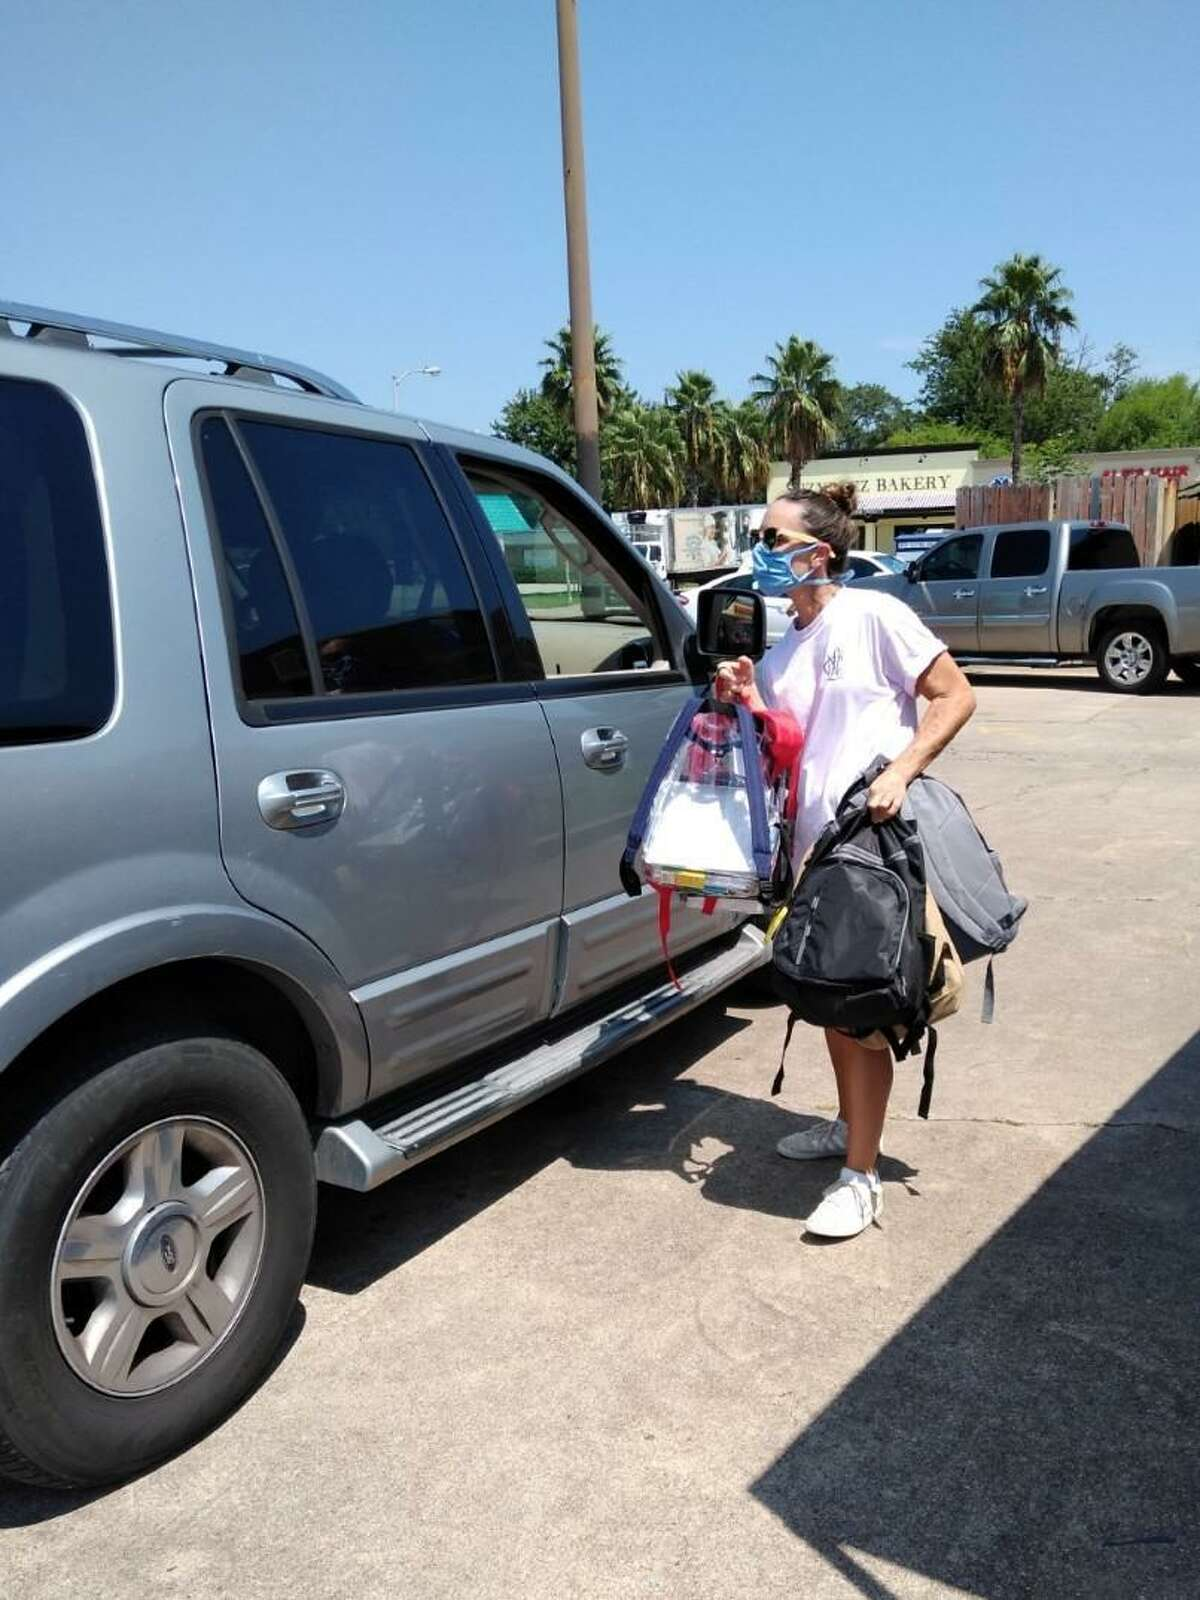 Cypress Assistance Ministries began distributing backpacks and school supplies on Monday, Aug. 3. In order to maintain social distancing and keep everyone safe they are using a drive-thru method where visitors show ID and proof of school registration for their children.